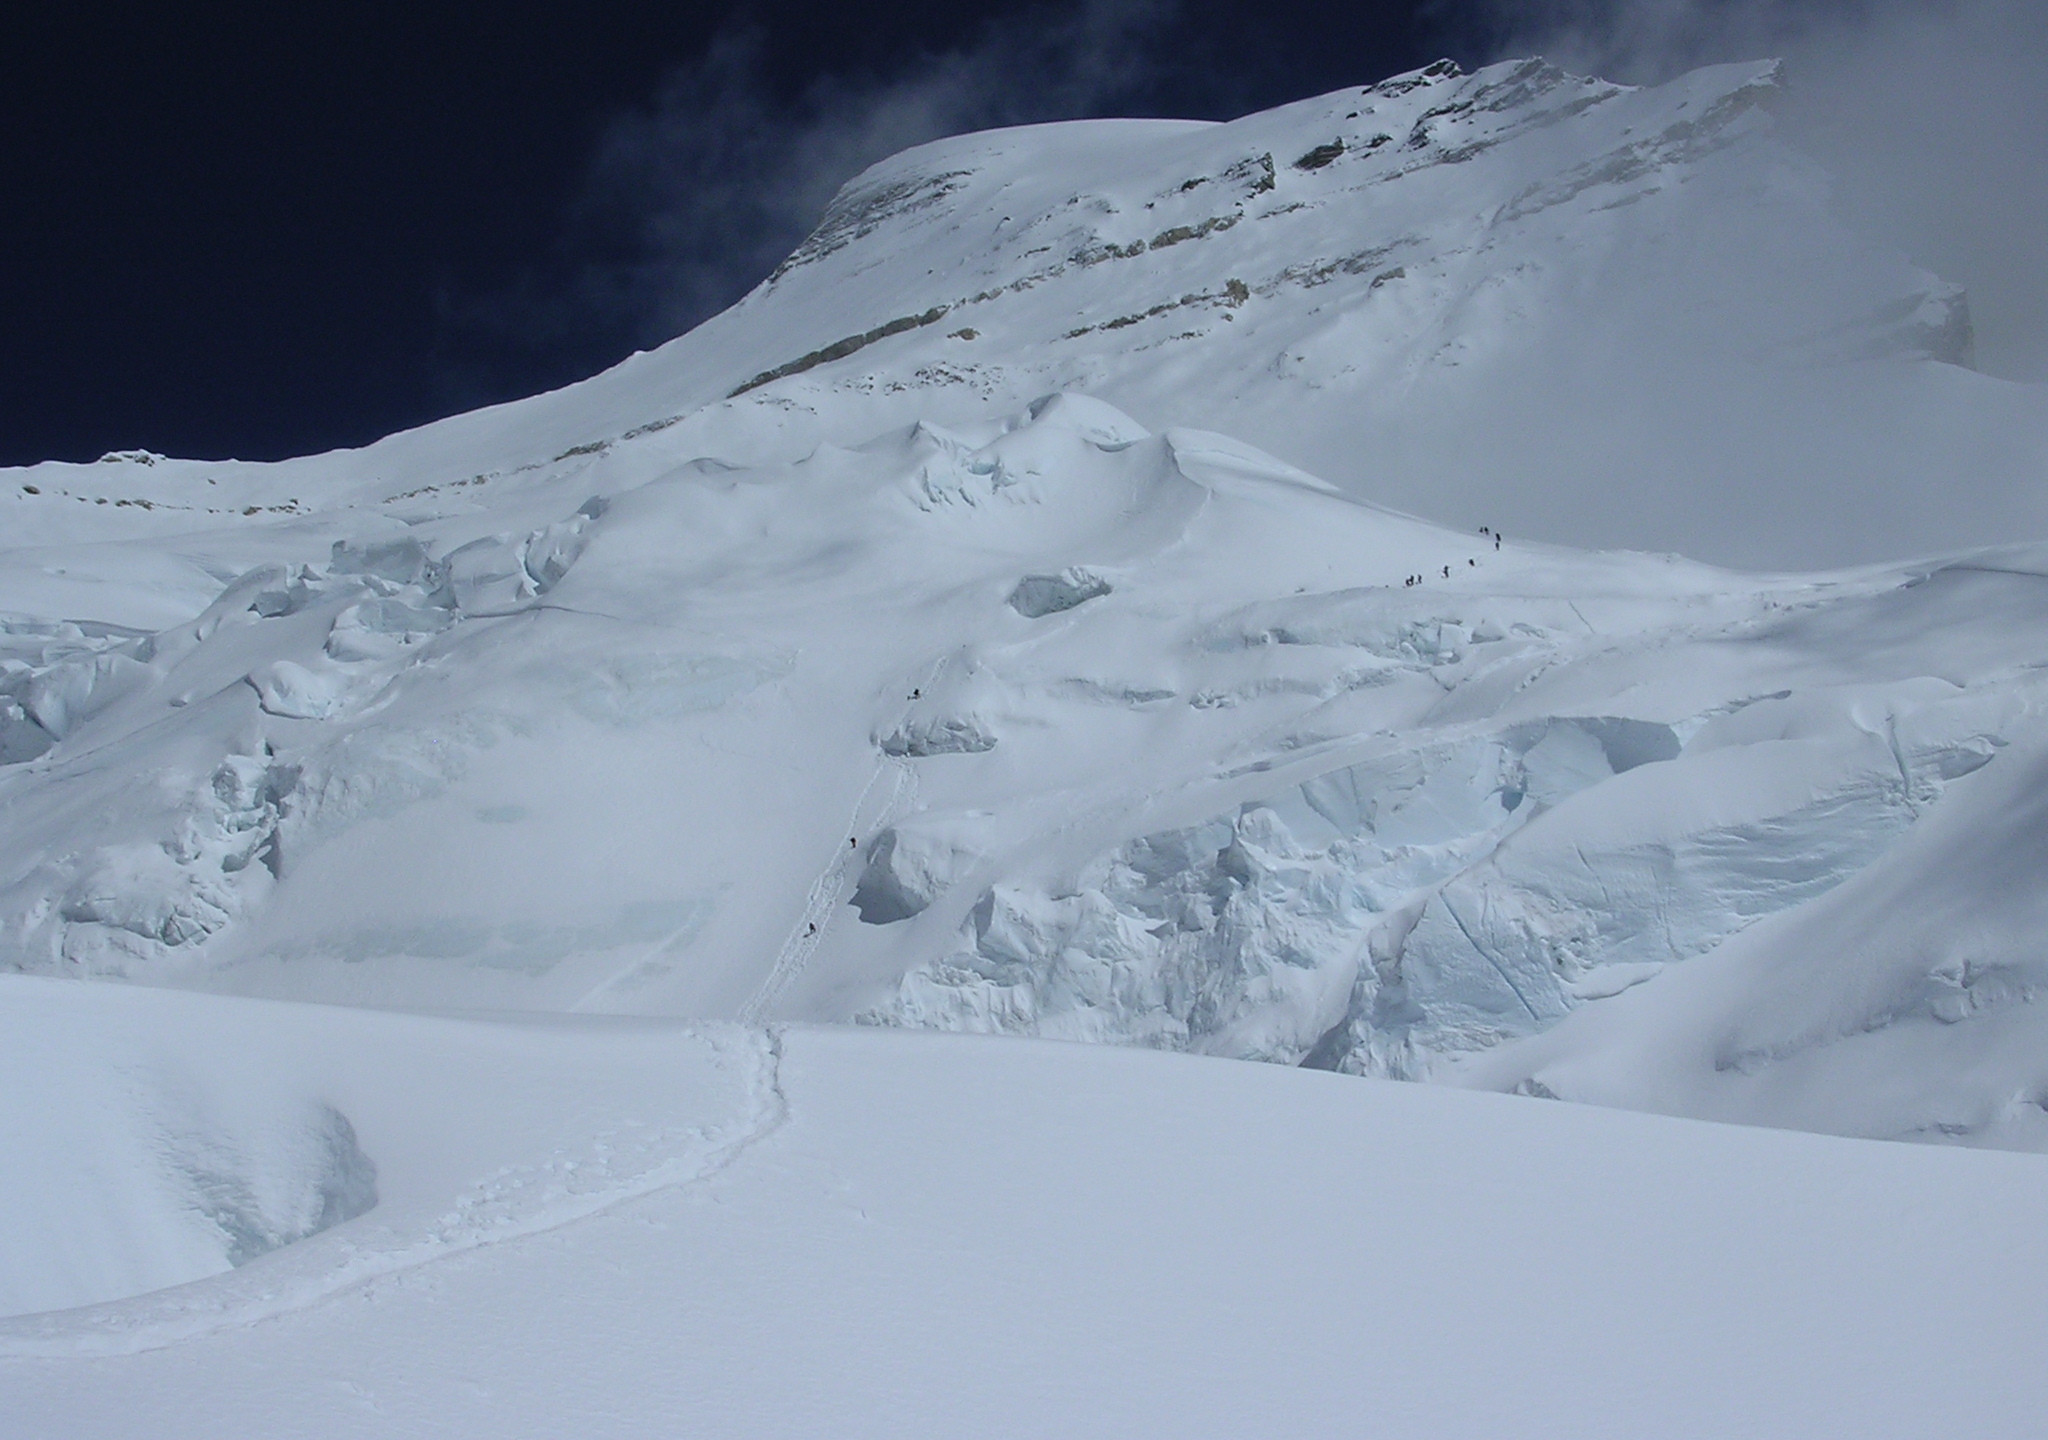 The route to camp 2